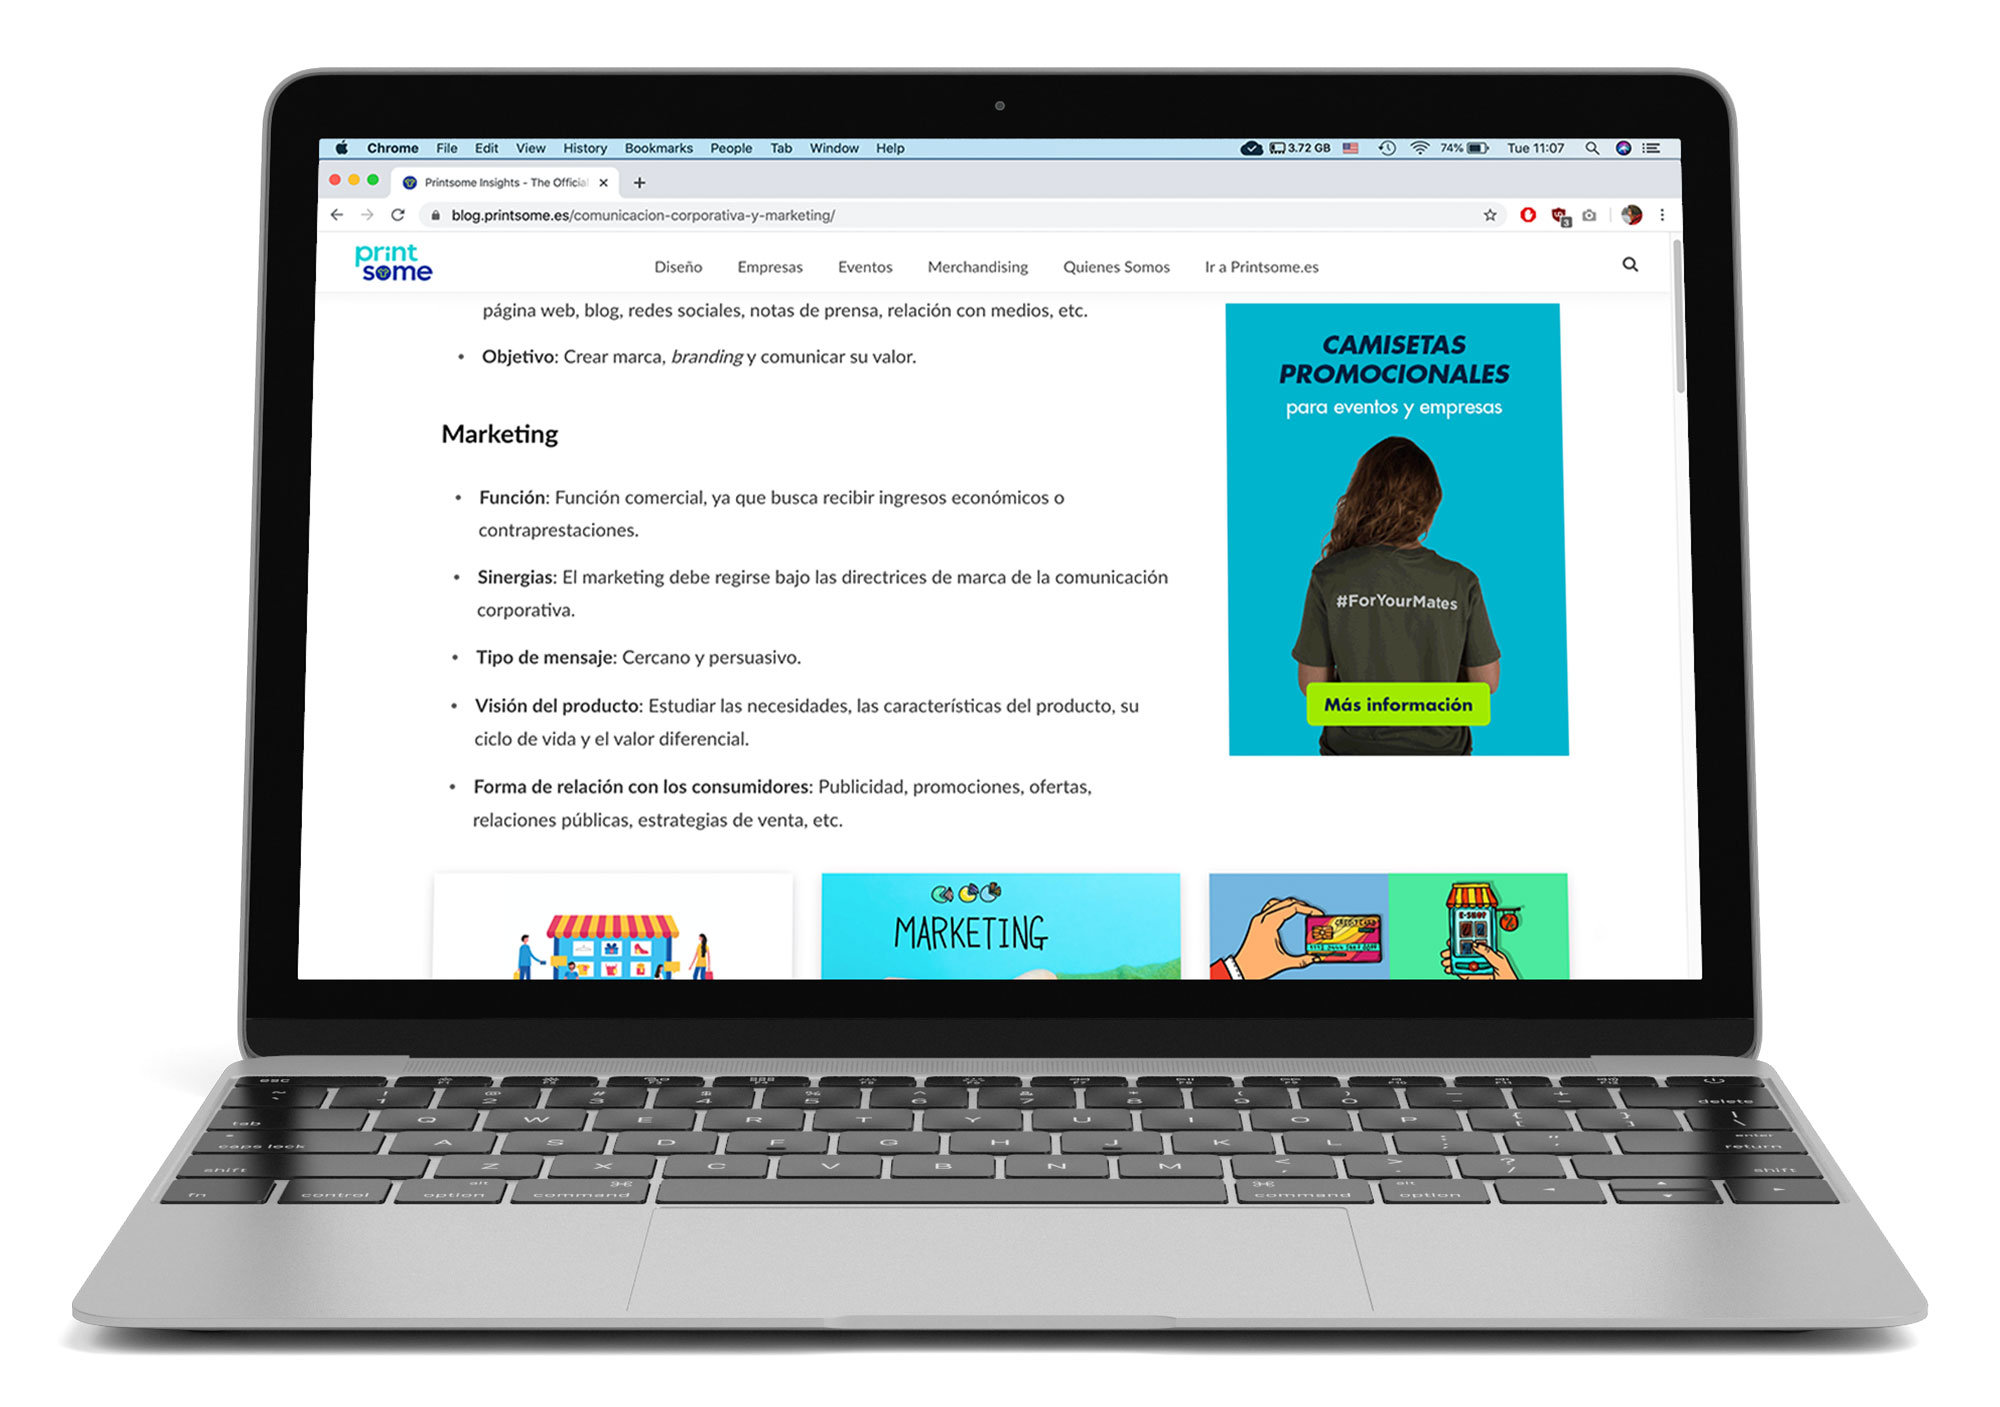 Banner ads as displayed on blog